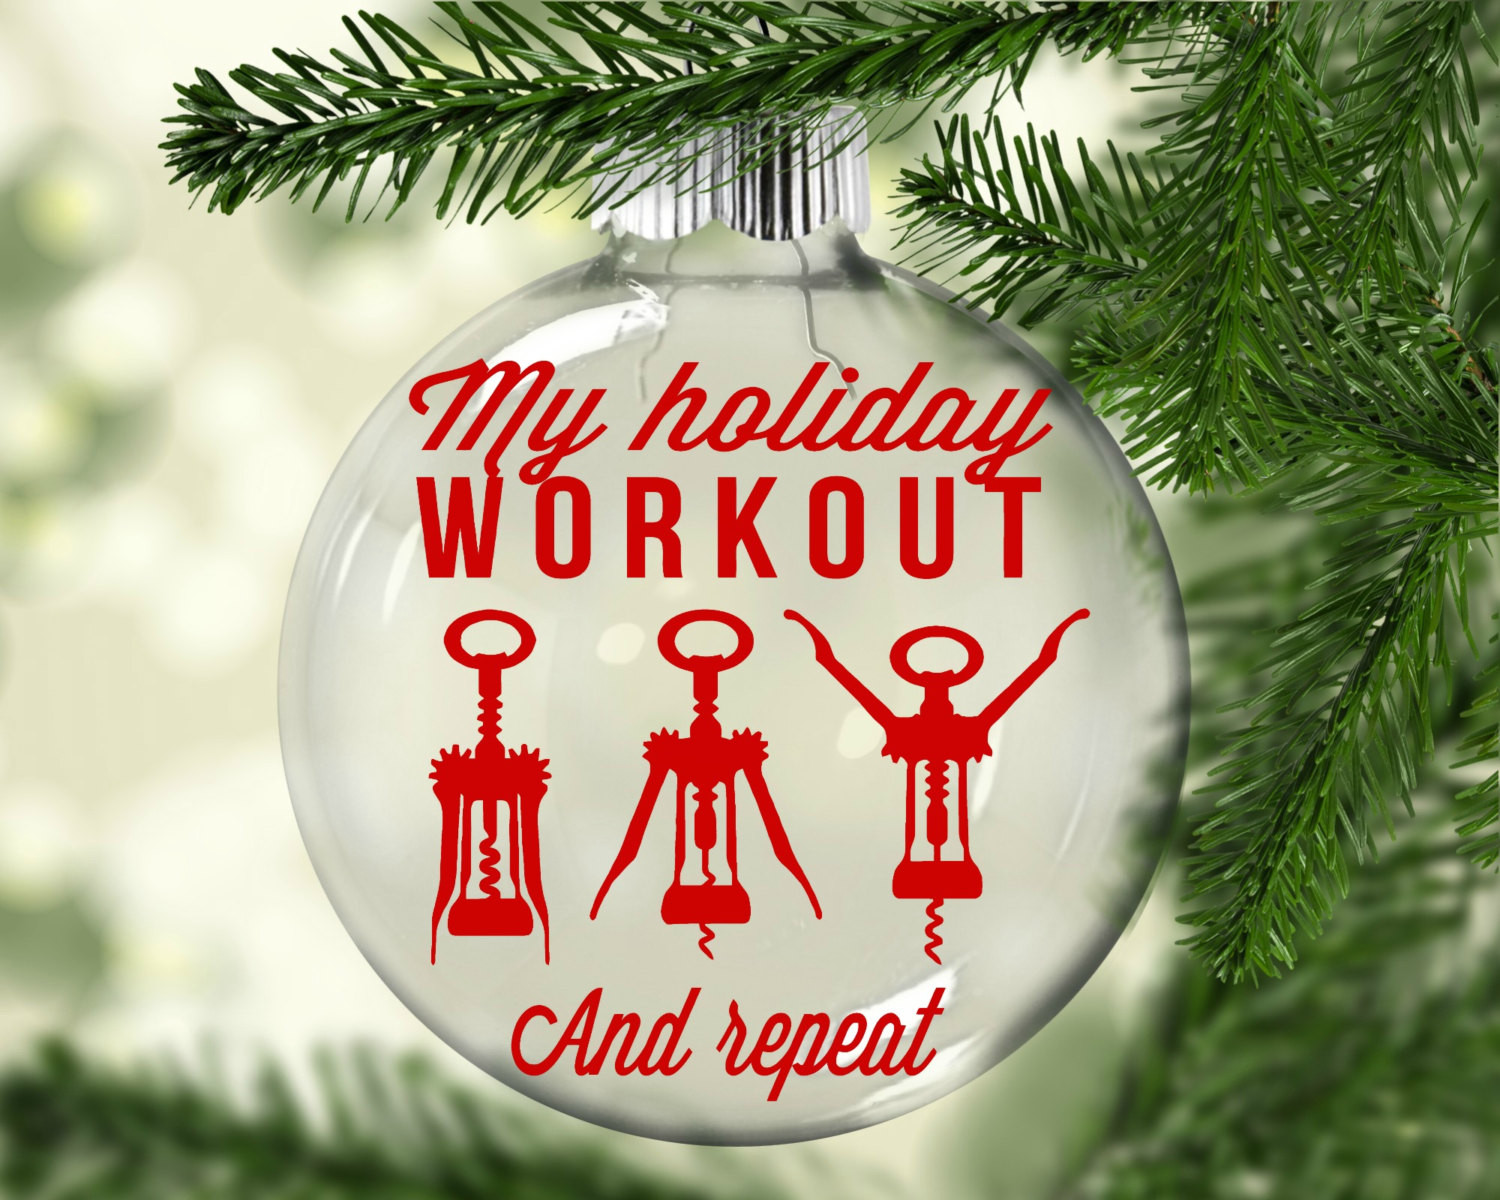 Funny Christmas ornaments Lovely Funny Christmas ornament Holiday Workout Christmas ornament Of Charming 48 Images Funny Christmas ornaments